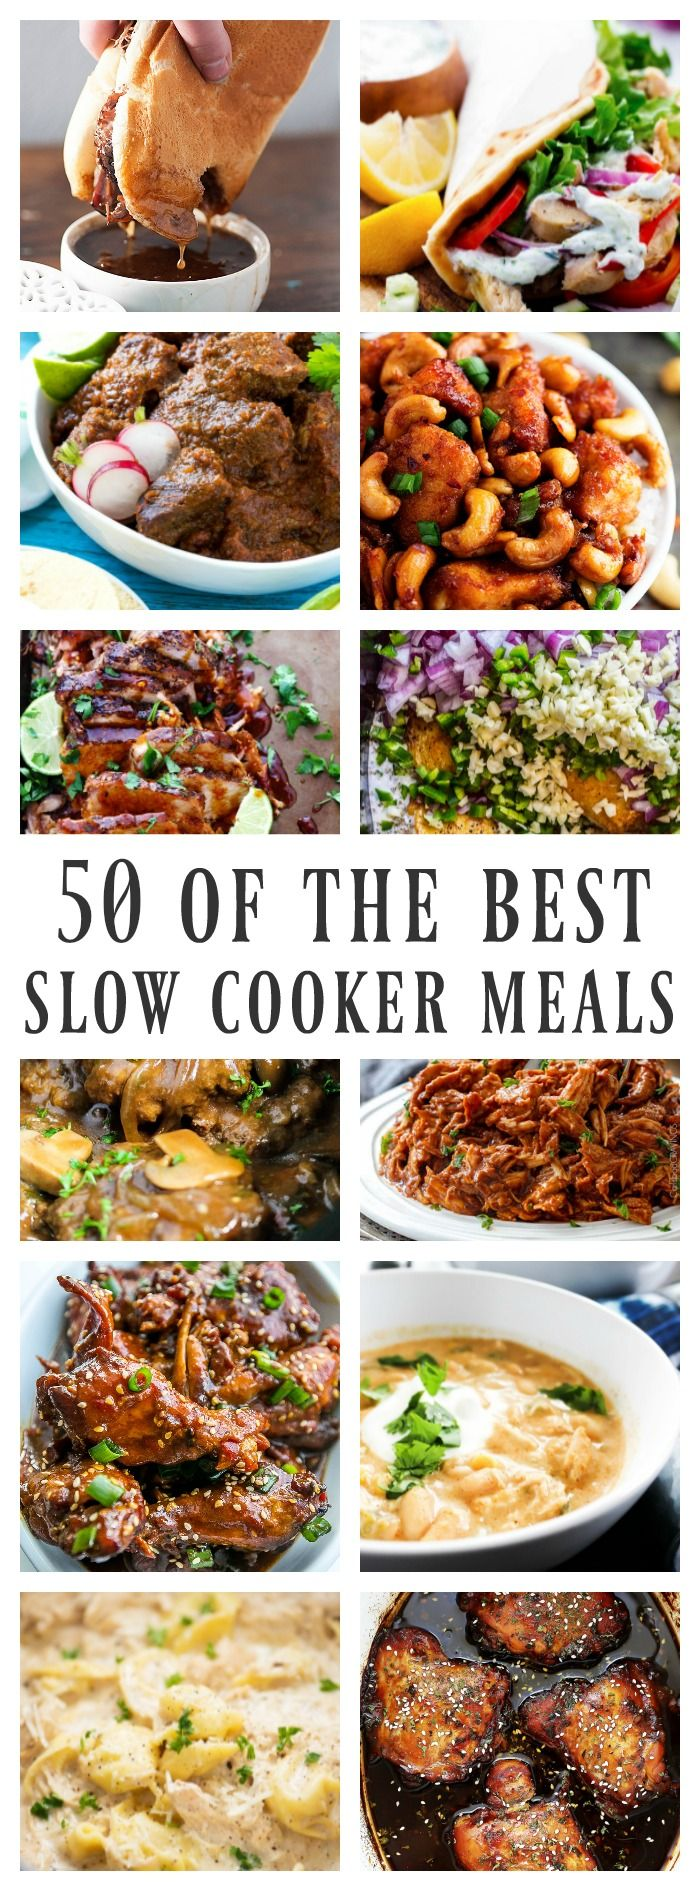 50 Of The Best Slow Cooker Meals Crockpot Creations Slow Cooker